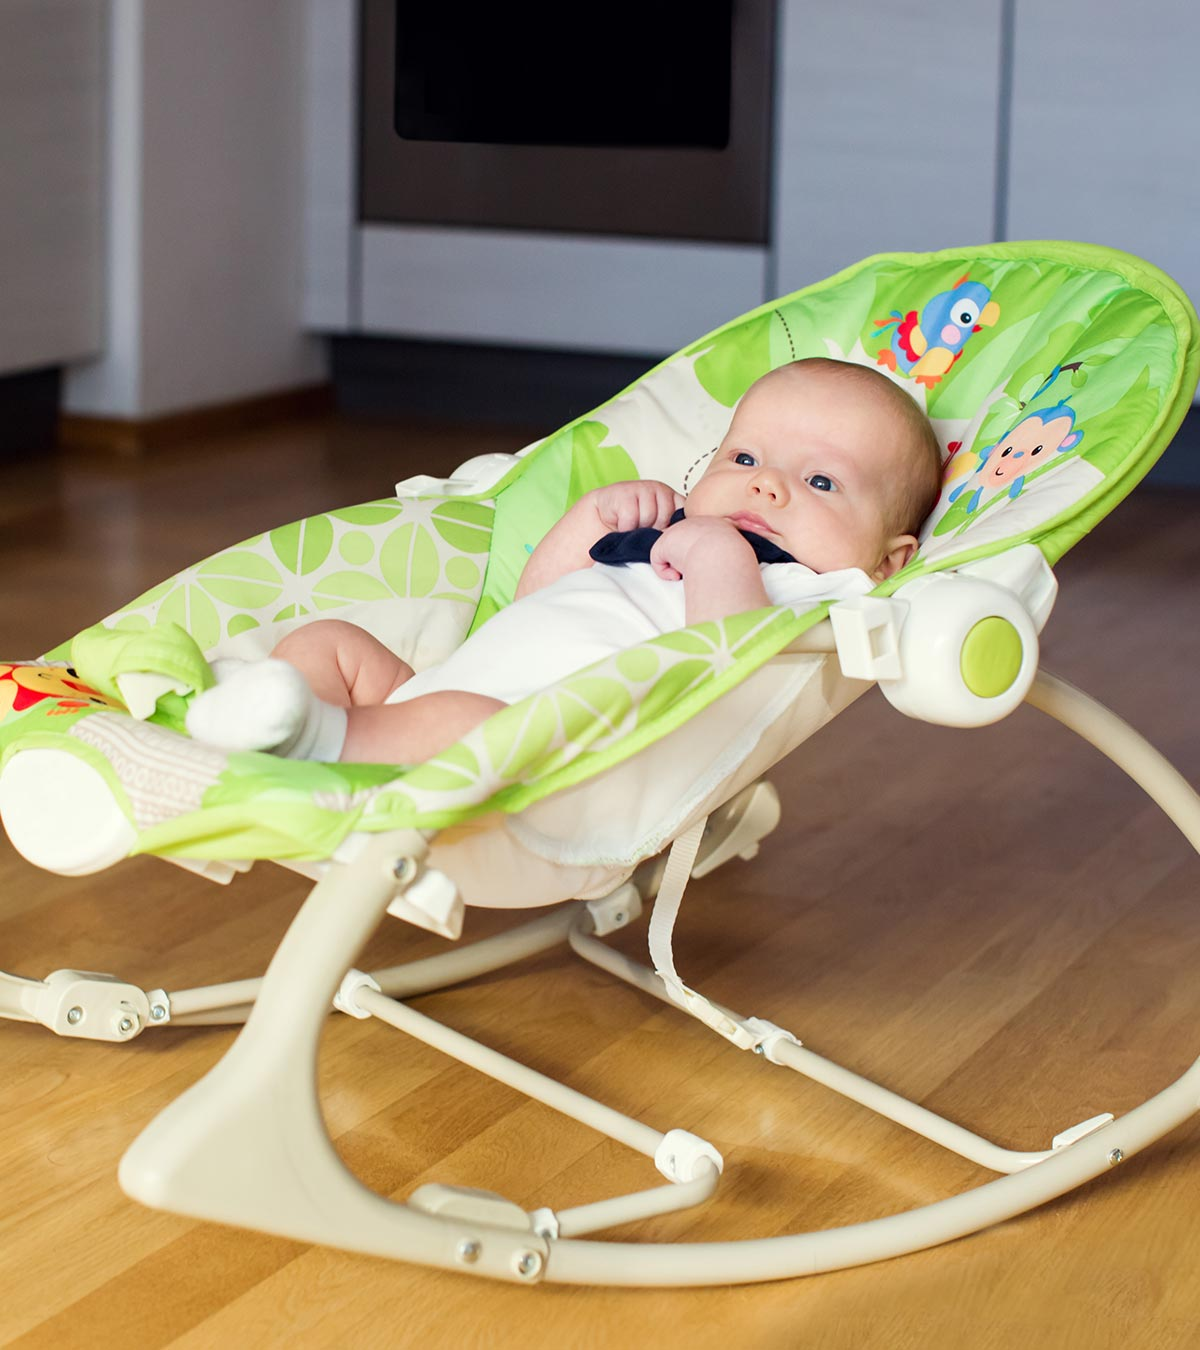 11 Best Nursery Gliders And Baby Rocking Chairs In 2020